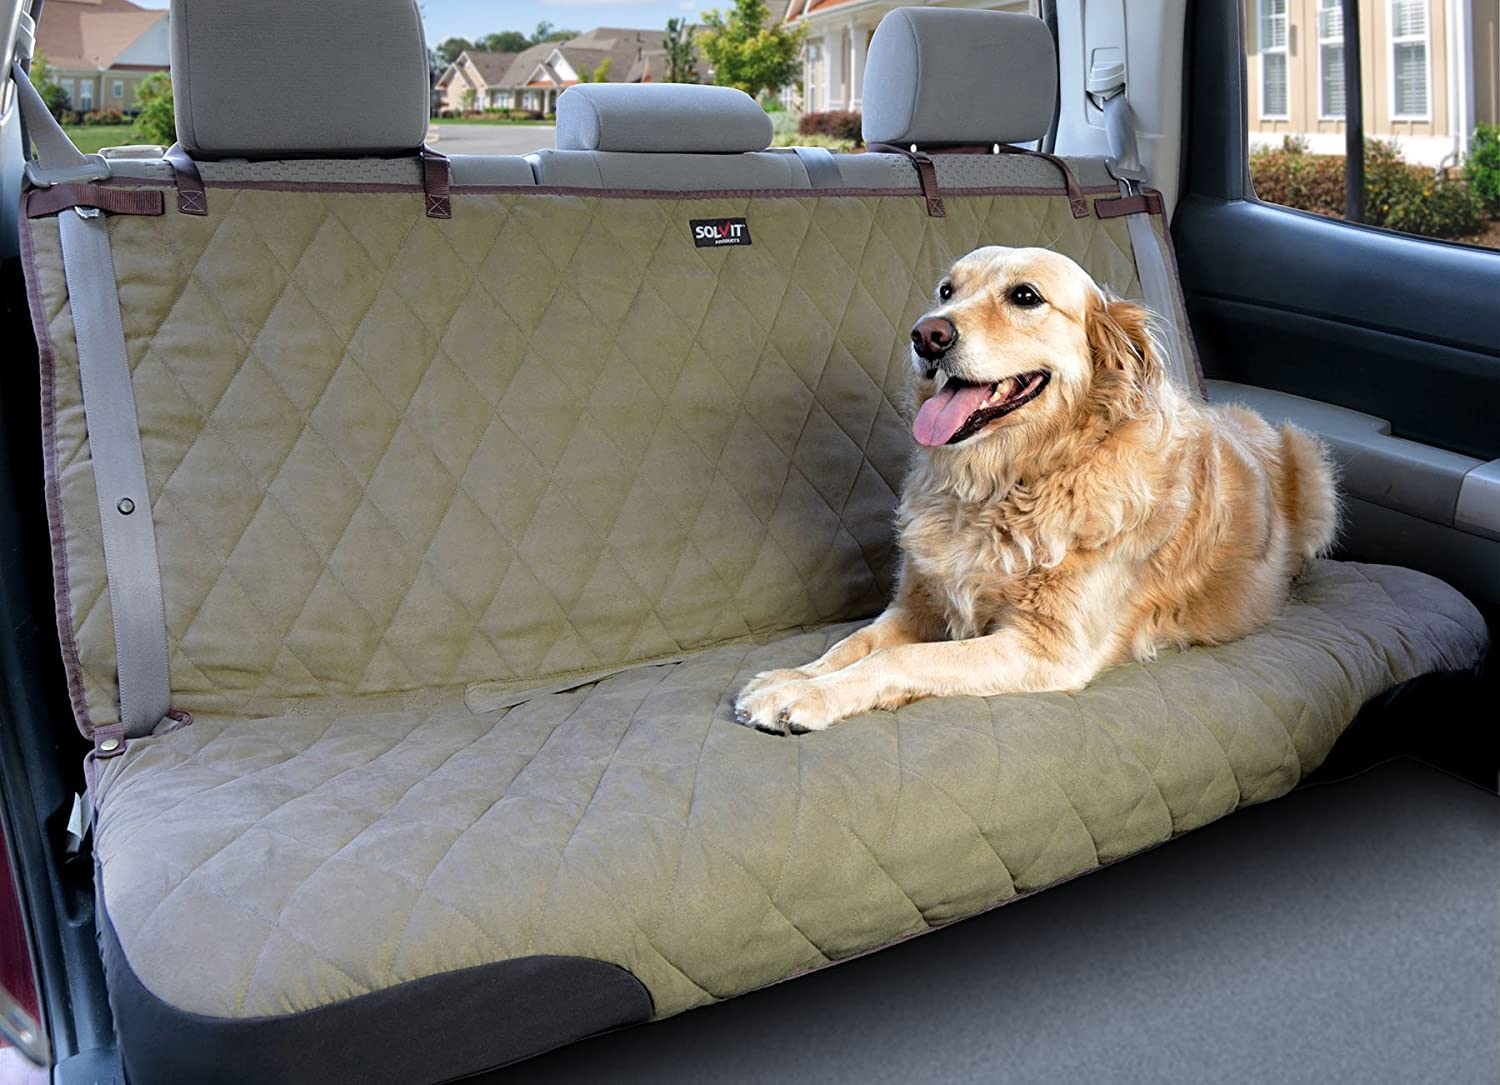 Green Standard Green Standard Solvit Products 62283 Deluxe Bench Seat Cover Natural, Large